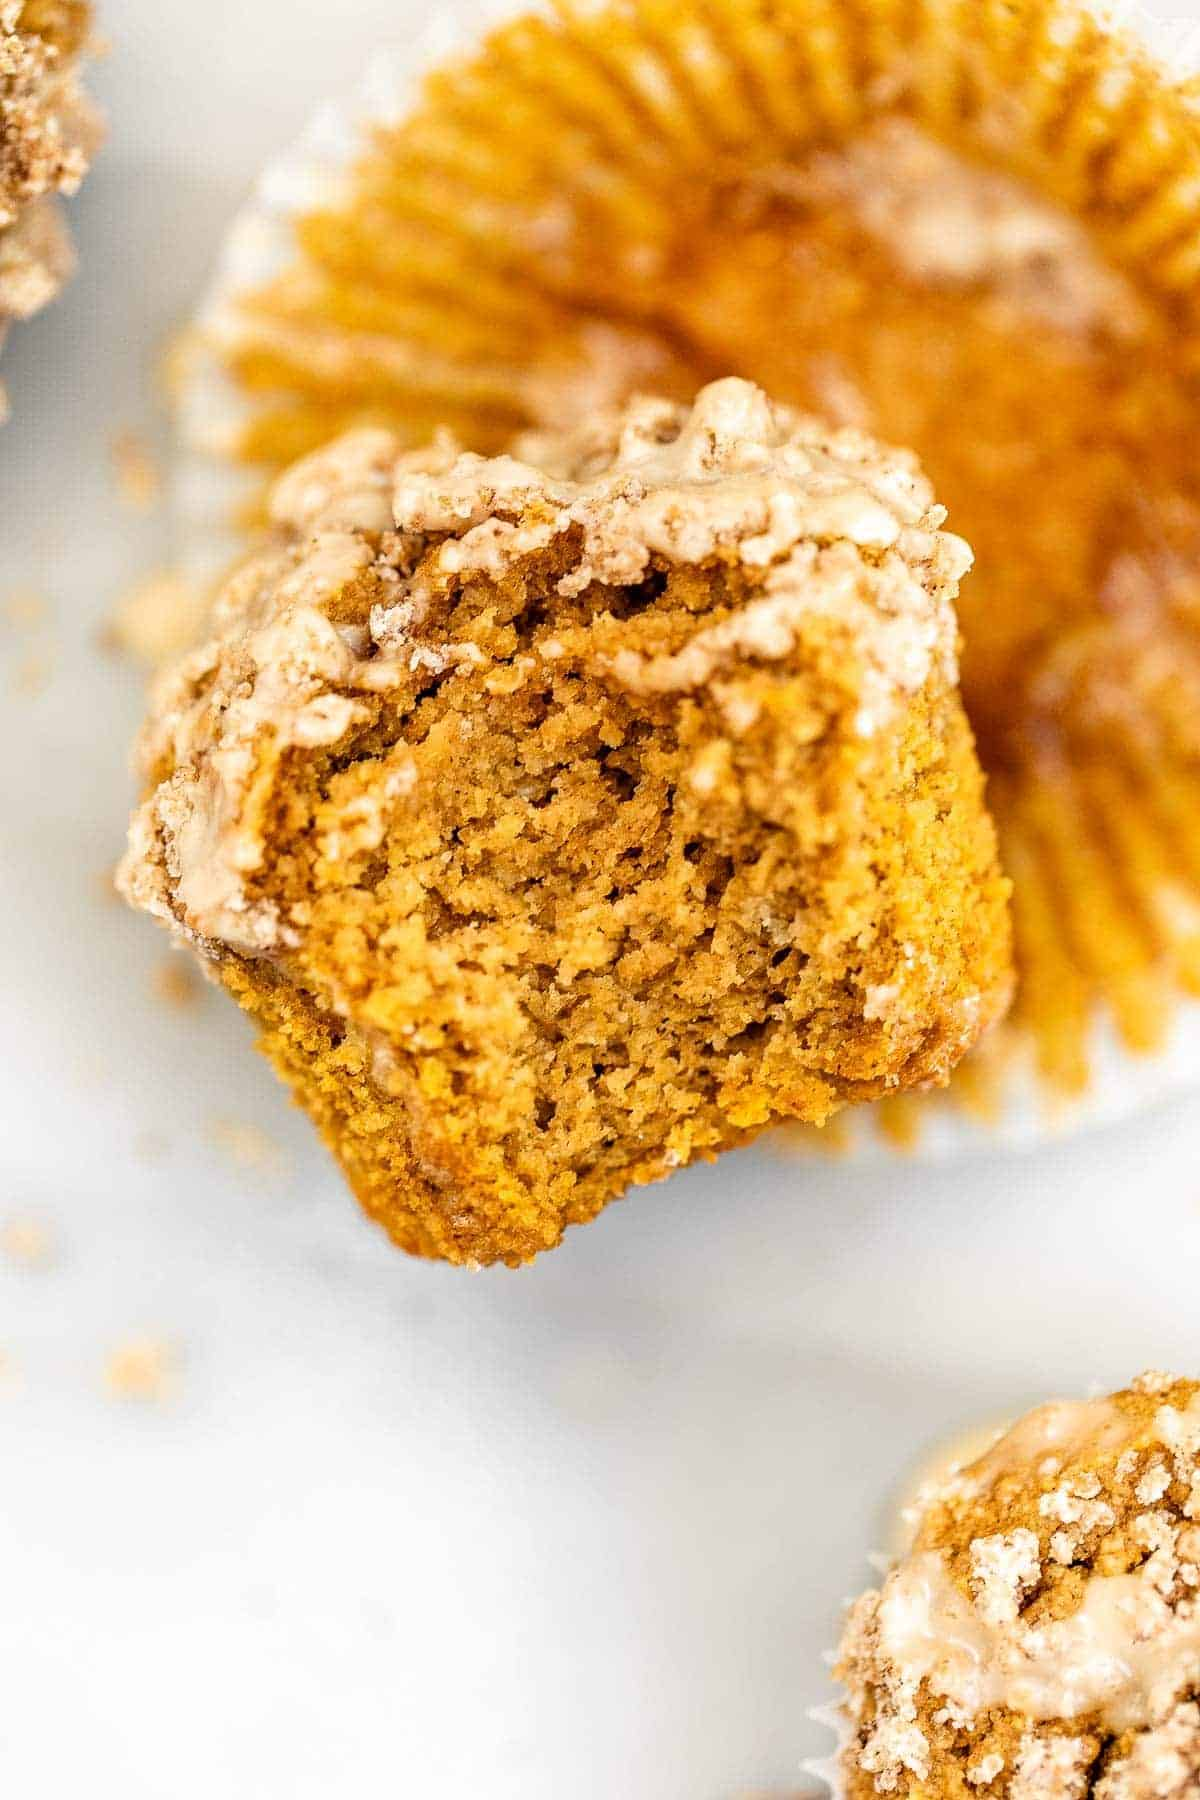 Up close shot of a sweet potato muffin with a bite taken out.